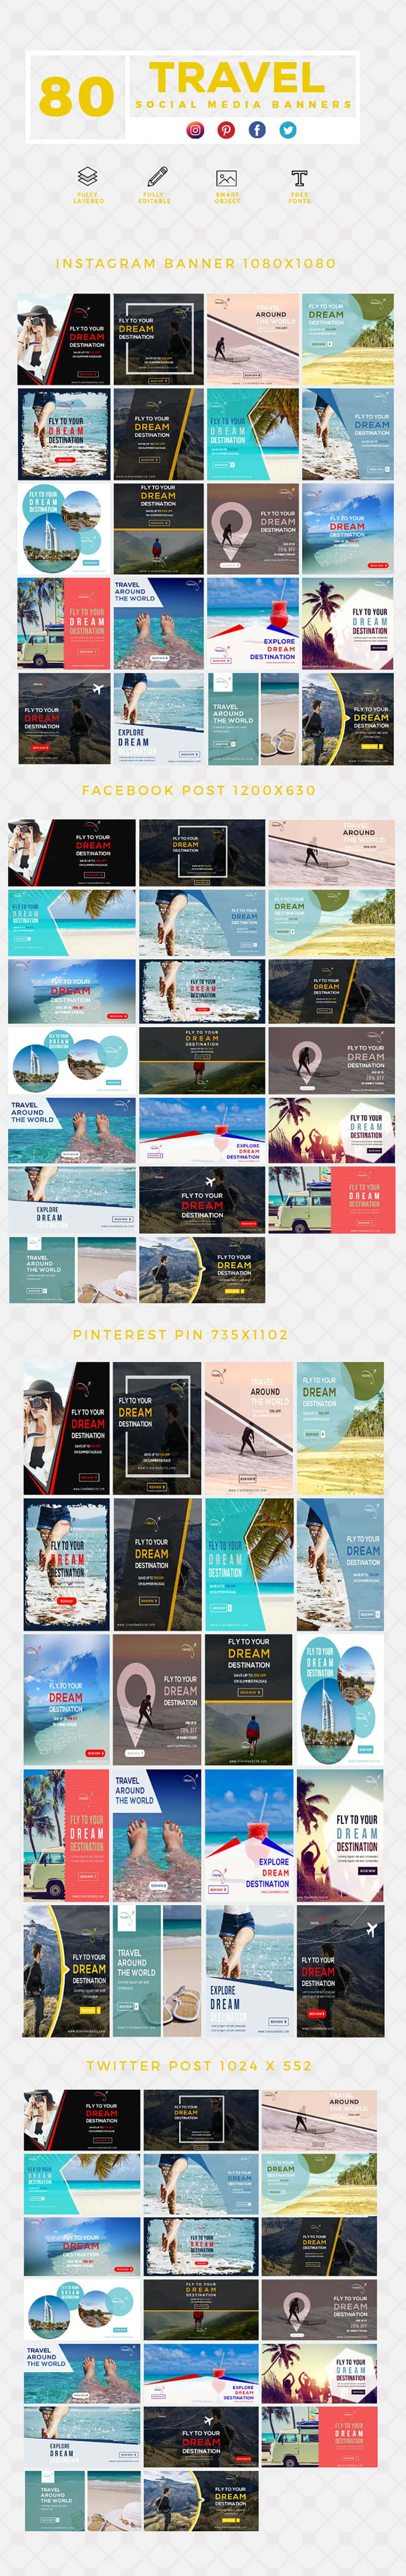 640 Templates for Facebook, Instagram, Twitter, Pinterest - $15 - PREVIEW TRAVEL min